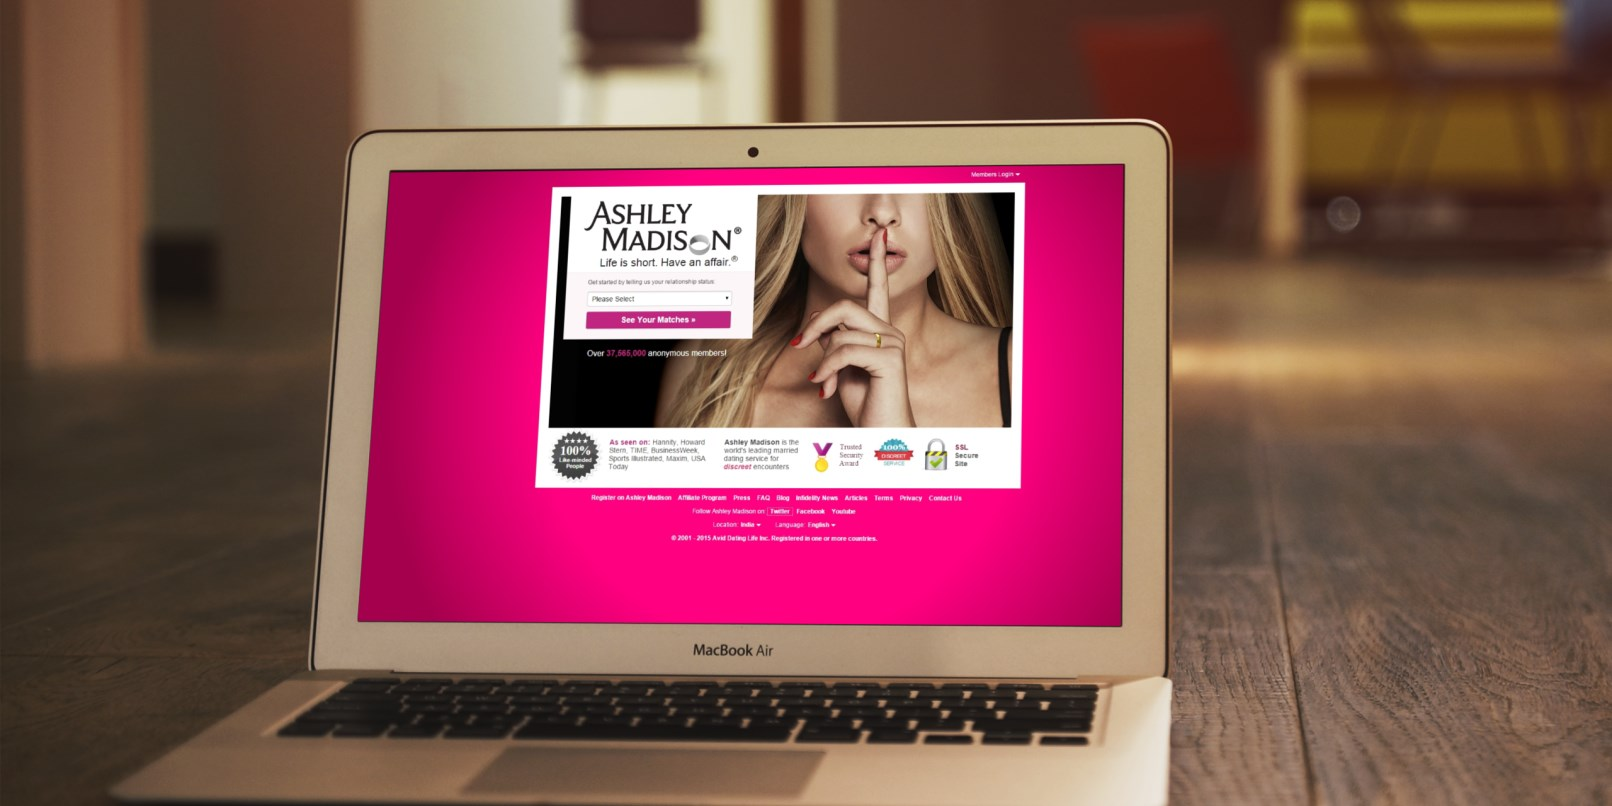 Ashley married dating service